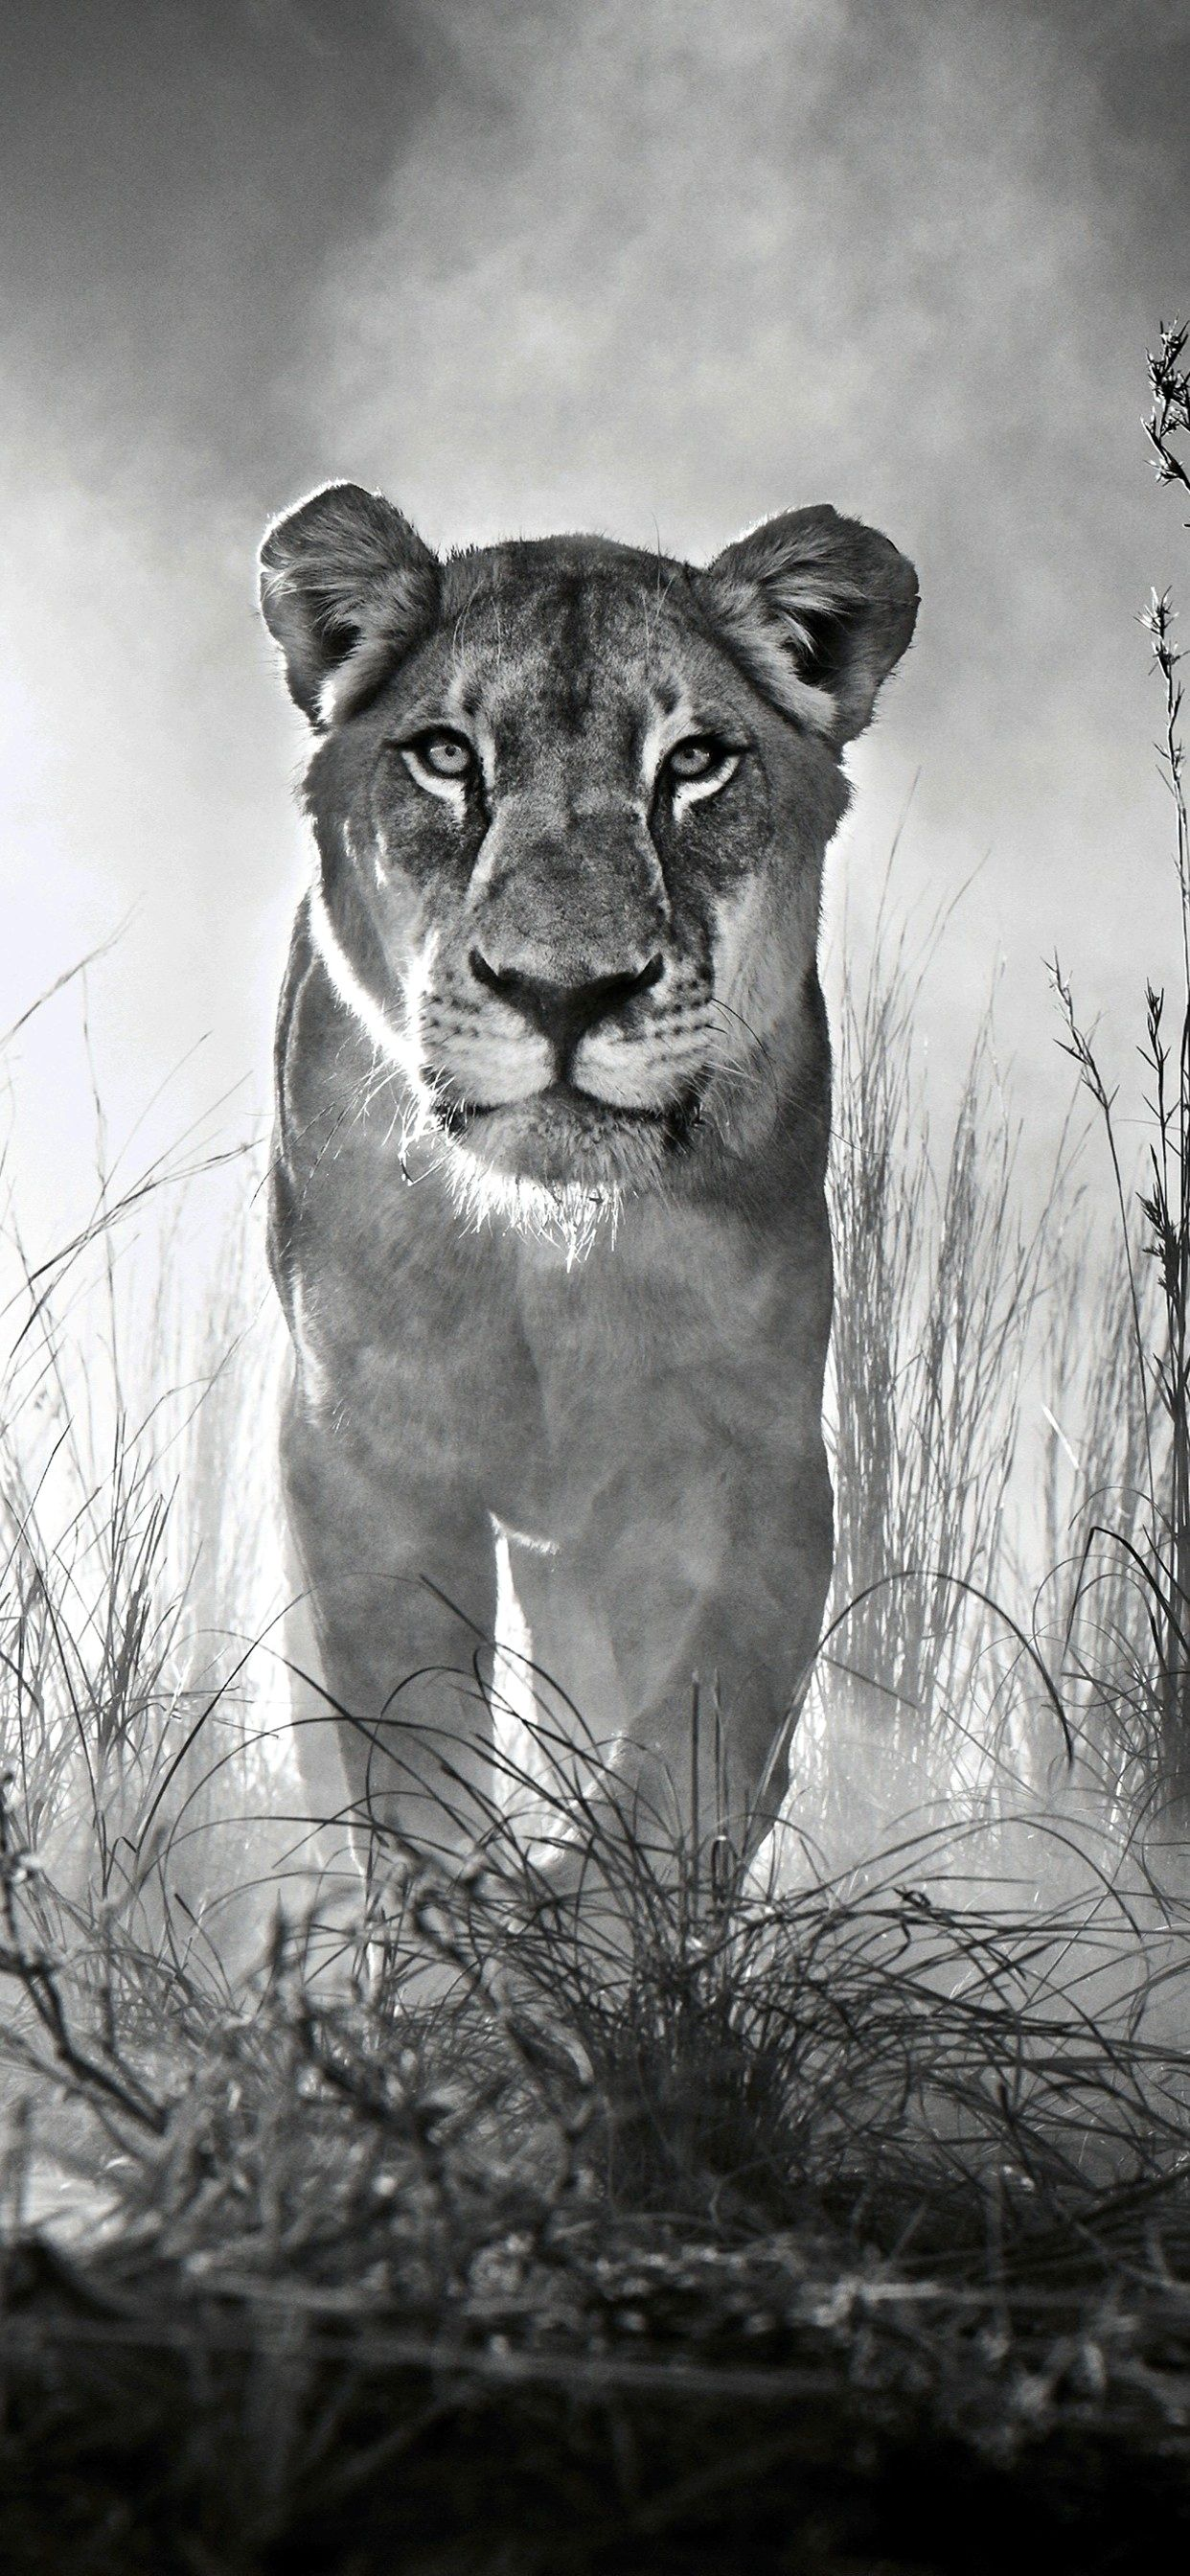 Iphone Wallpaper 4k Black And White Gallery Lion Pictures Lion Wallpaper Animal Wallpaper